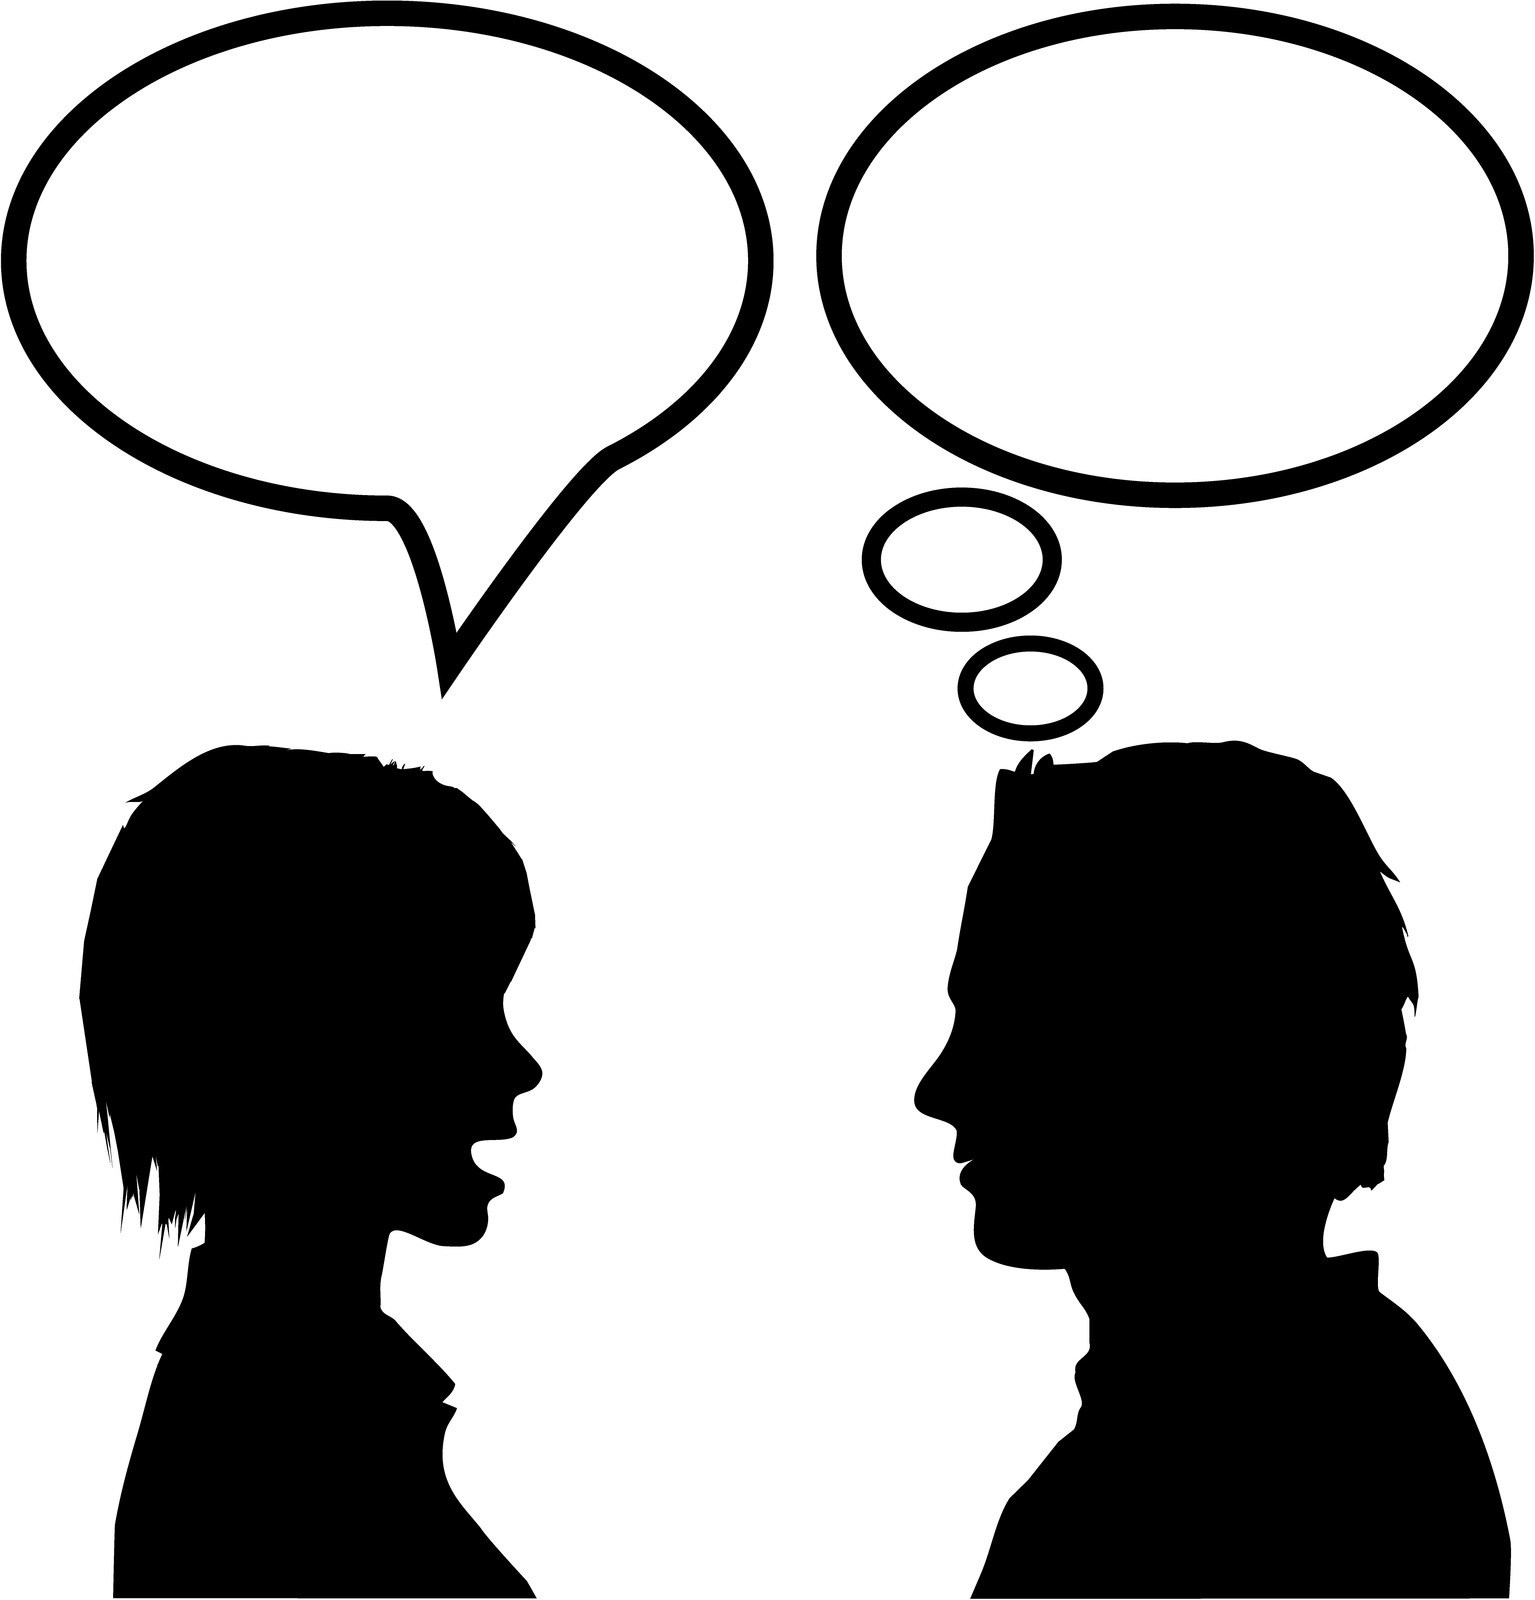 People communicating clipart 4 » Clipart Portal.